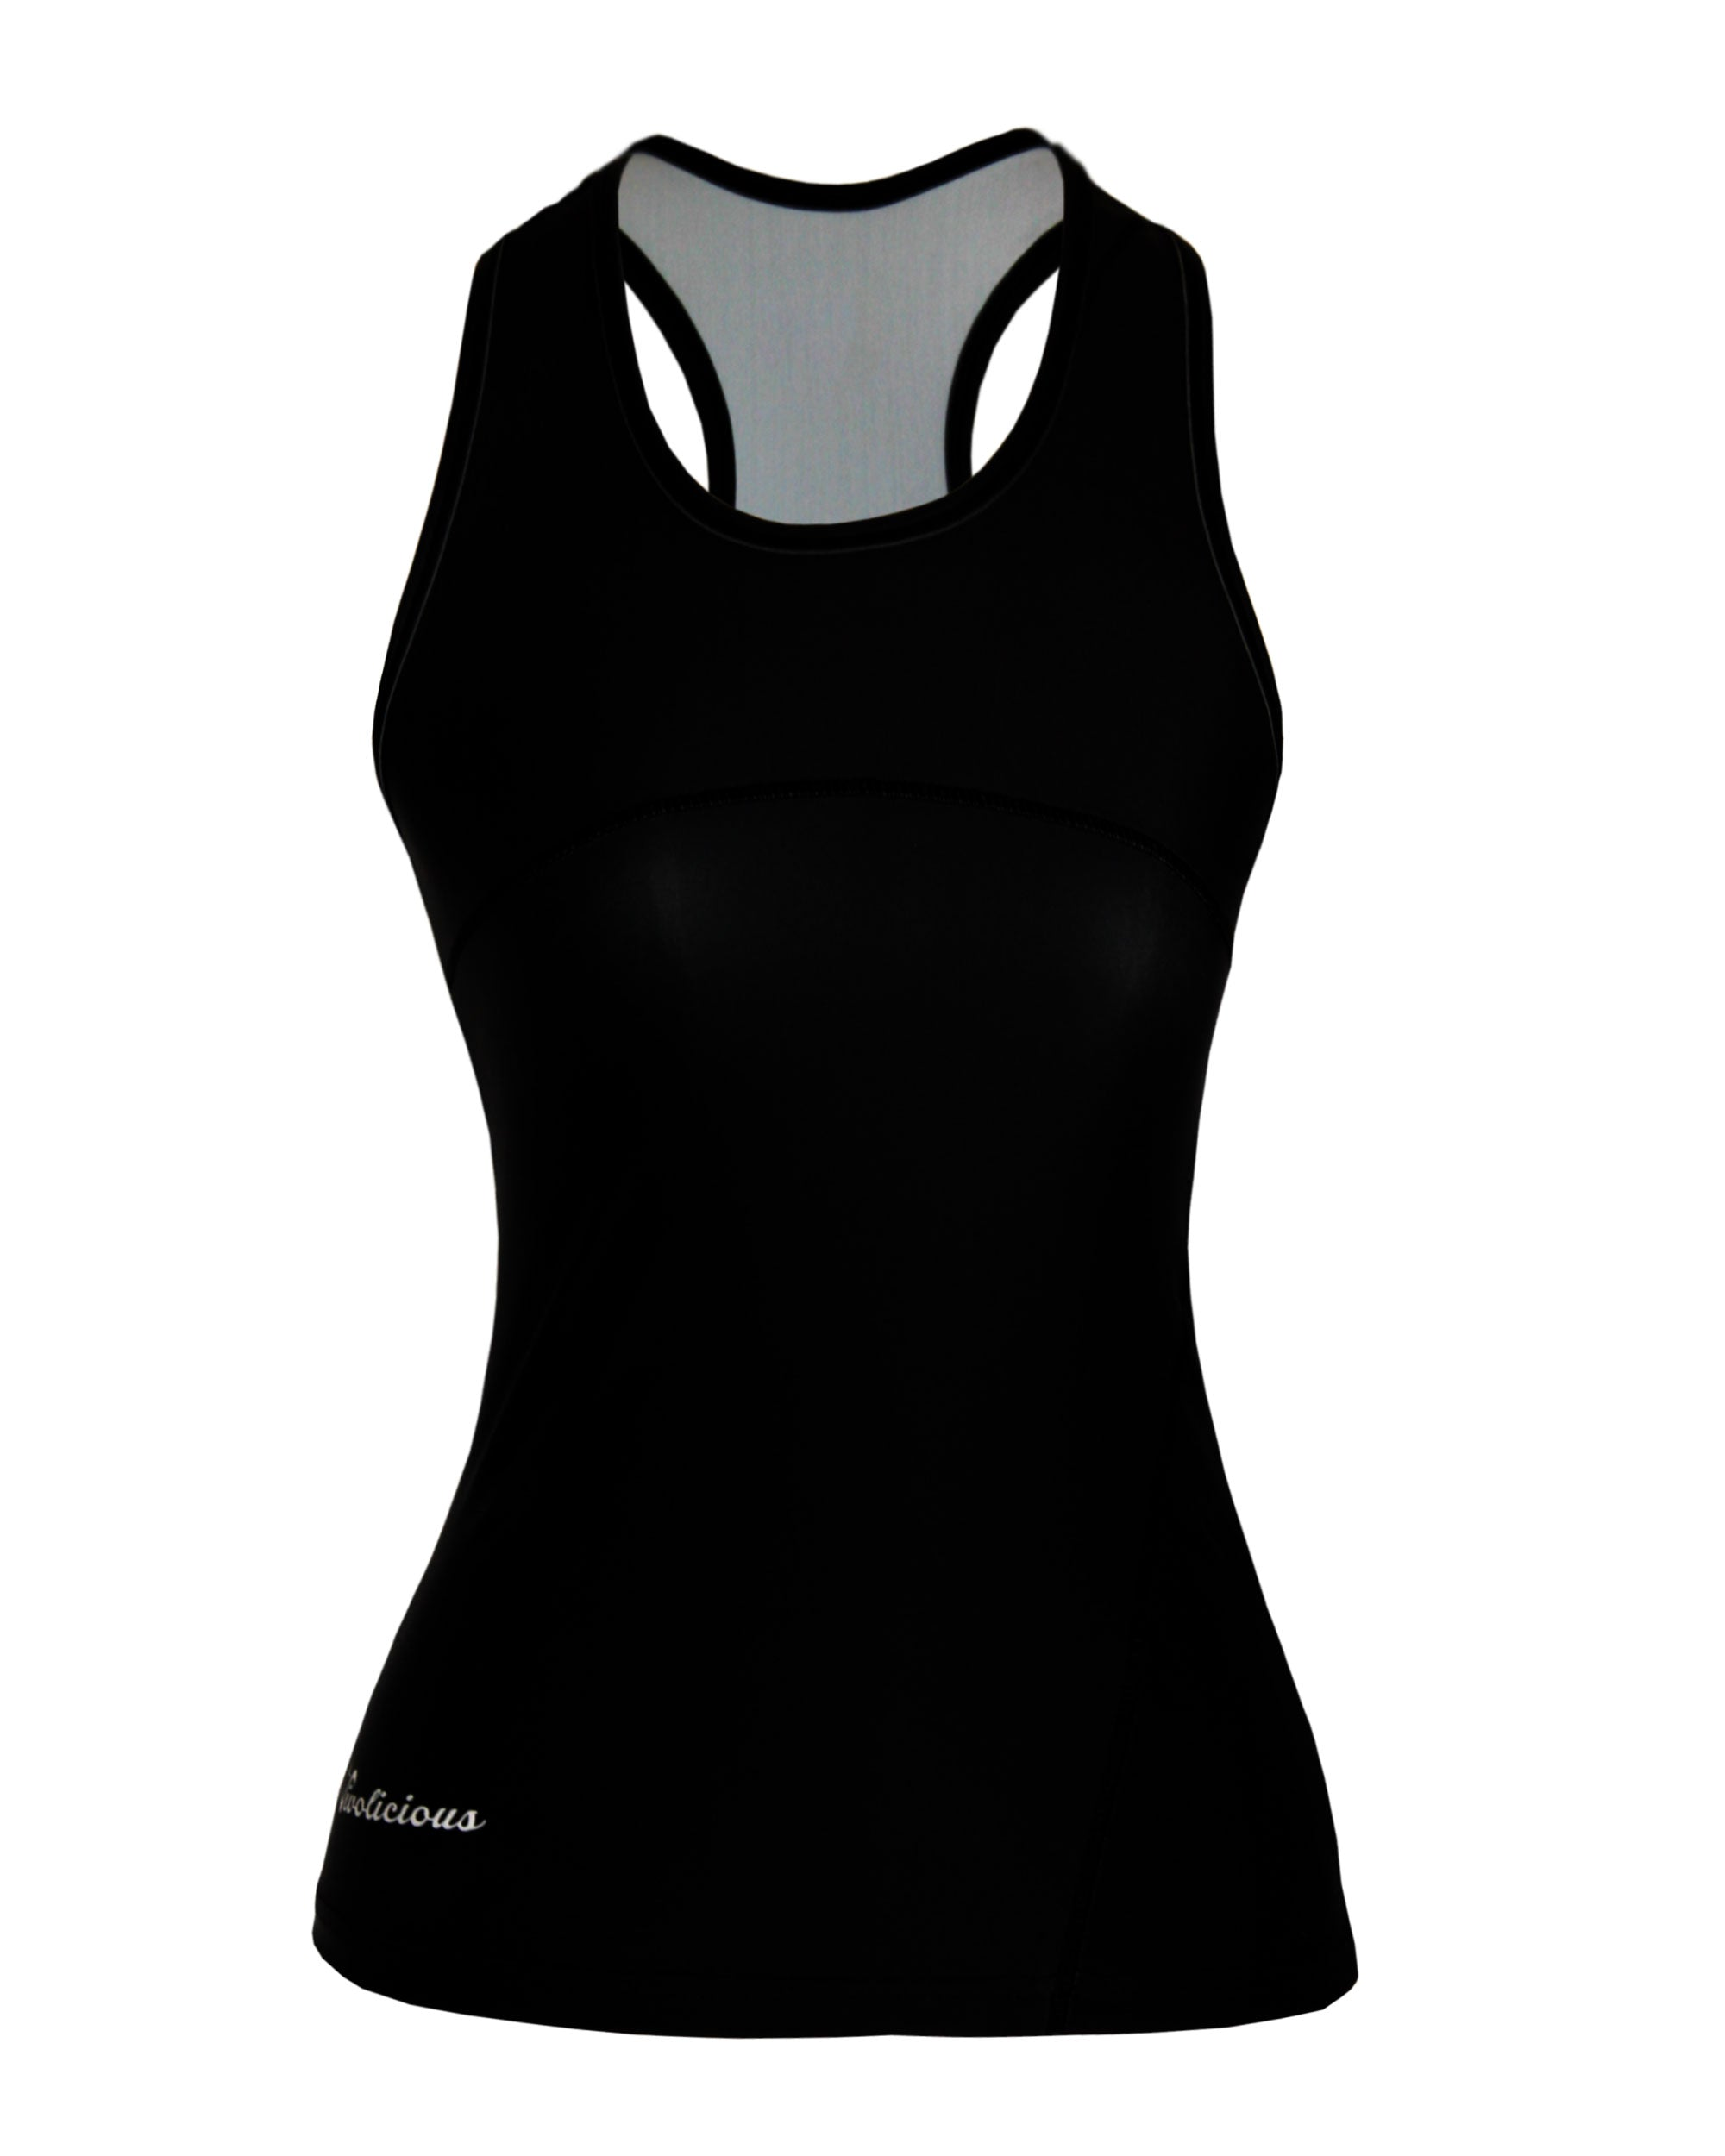 BASIC BLACK Tech Racer Back VIVOLICIOUS Women's Active Wear Tops